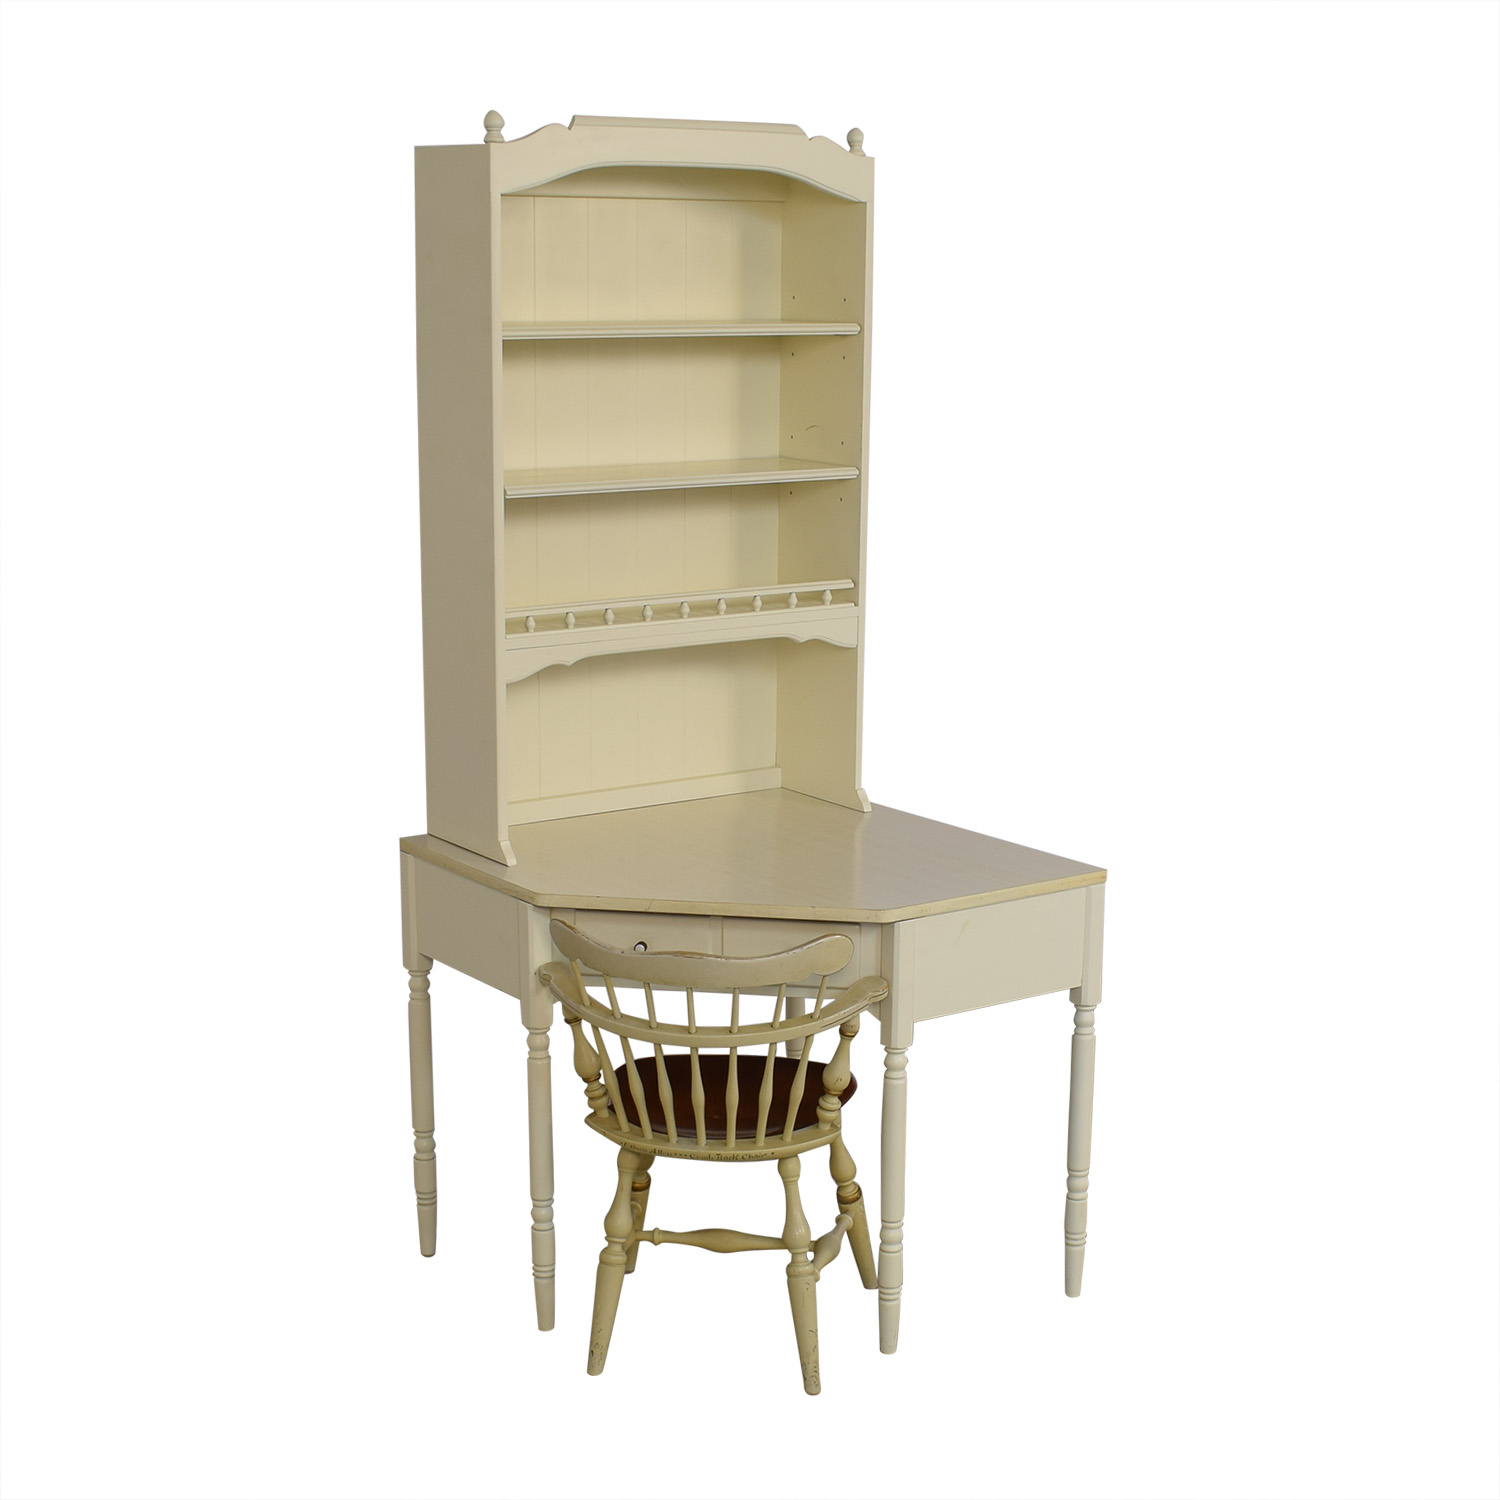 Ethan Allen Ethan Allen Desk with Hutch used